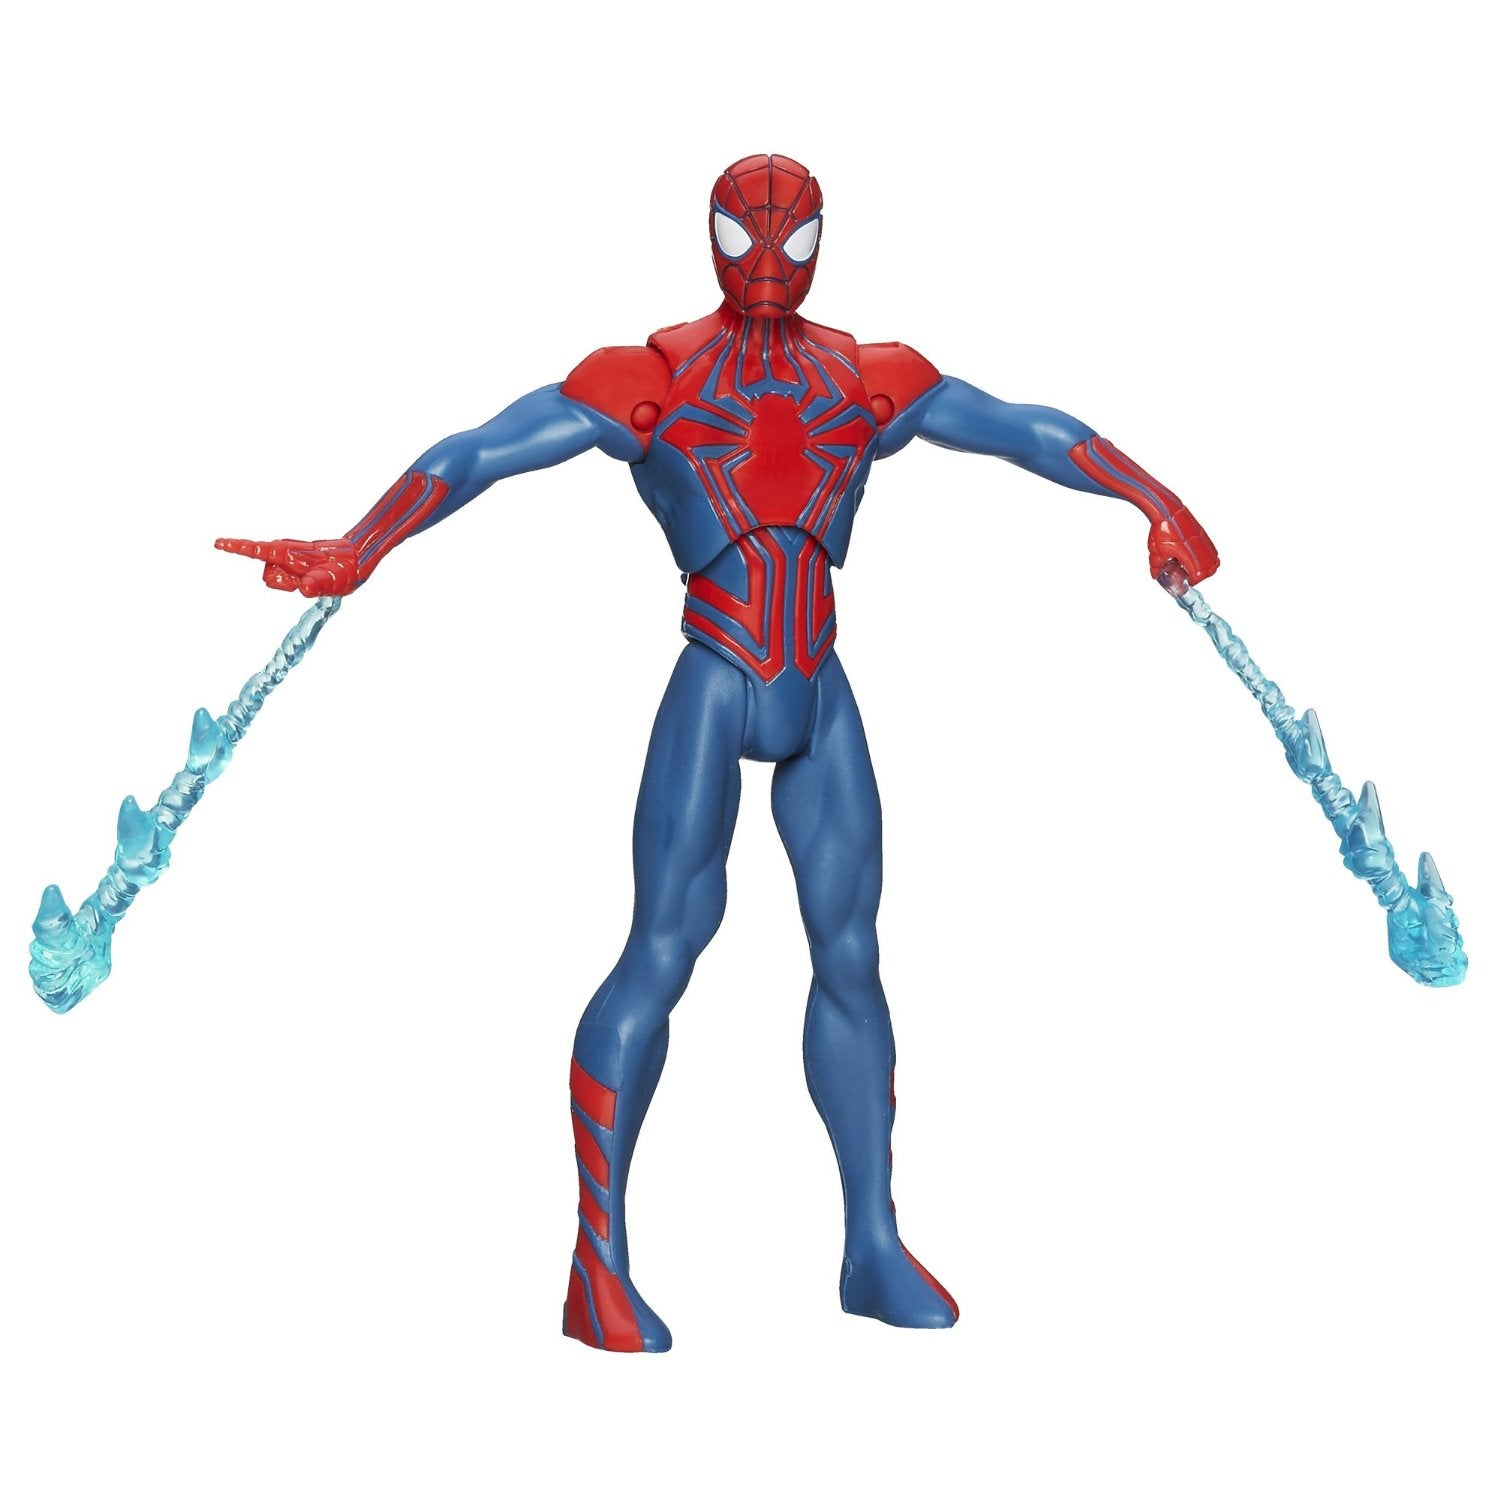 Spider-Man Action Figures - Ultimate Webb Whirl Wind Spider-Man